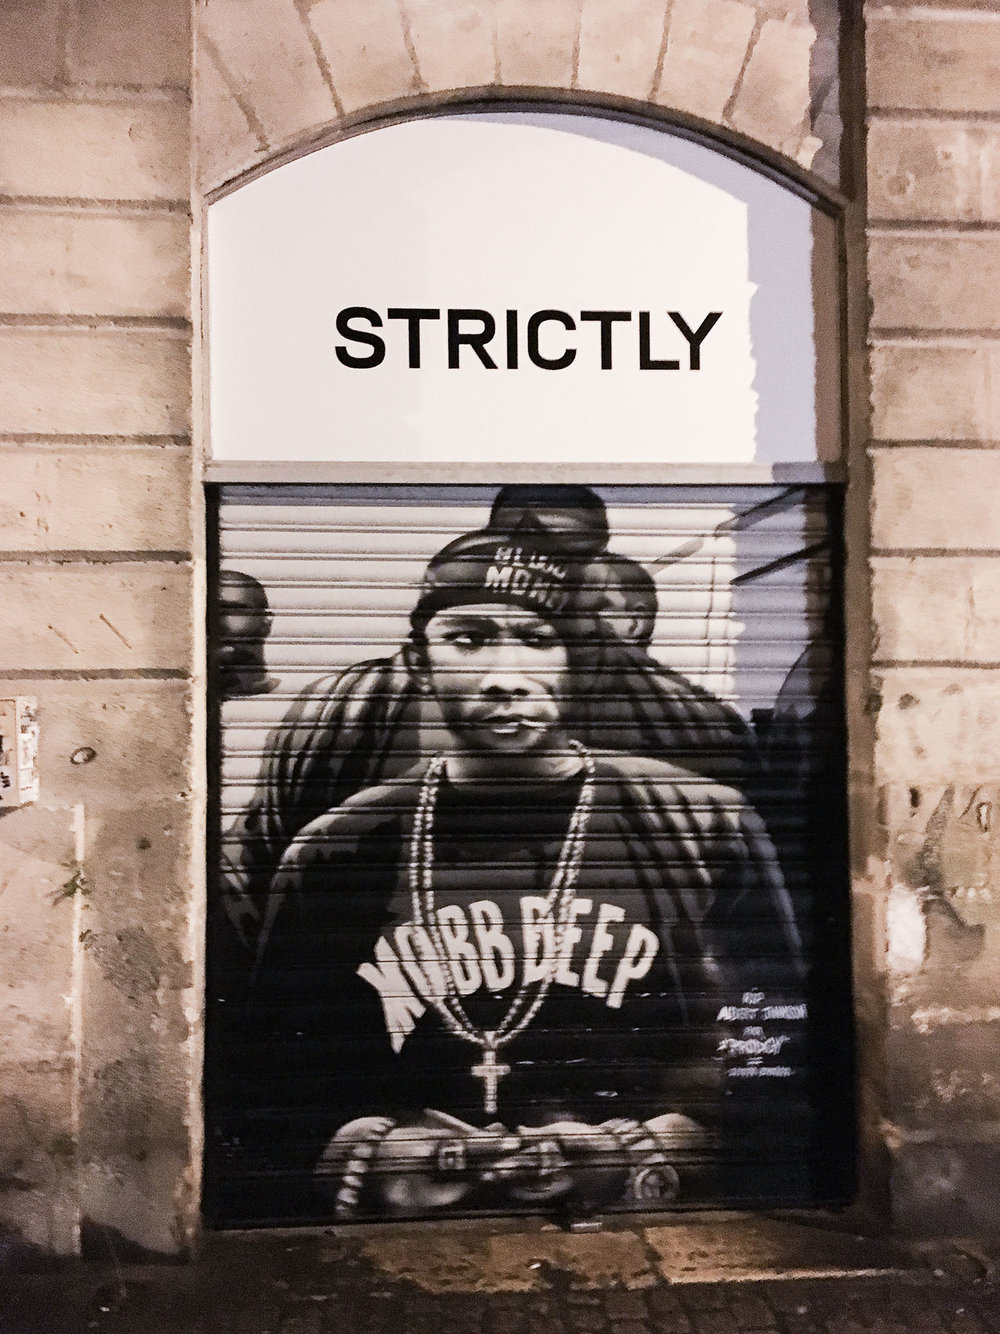 I happened to find a Mobb Deep mural in a random side street! The French love hiphop.. RIP Prodigy